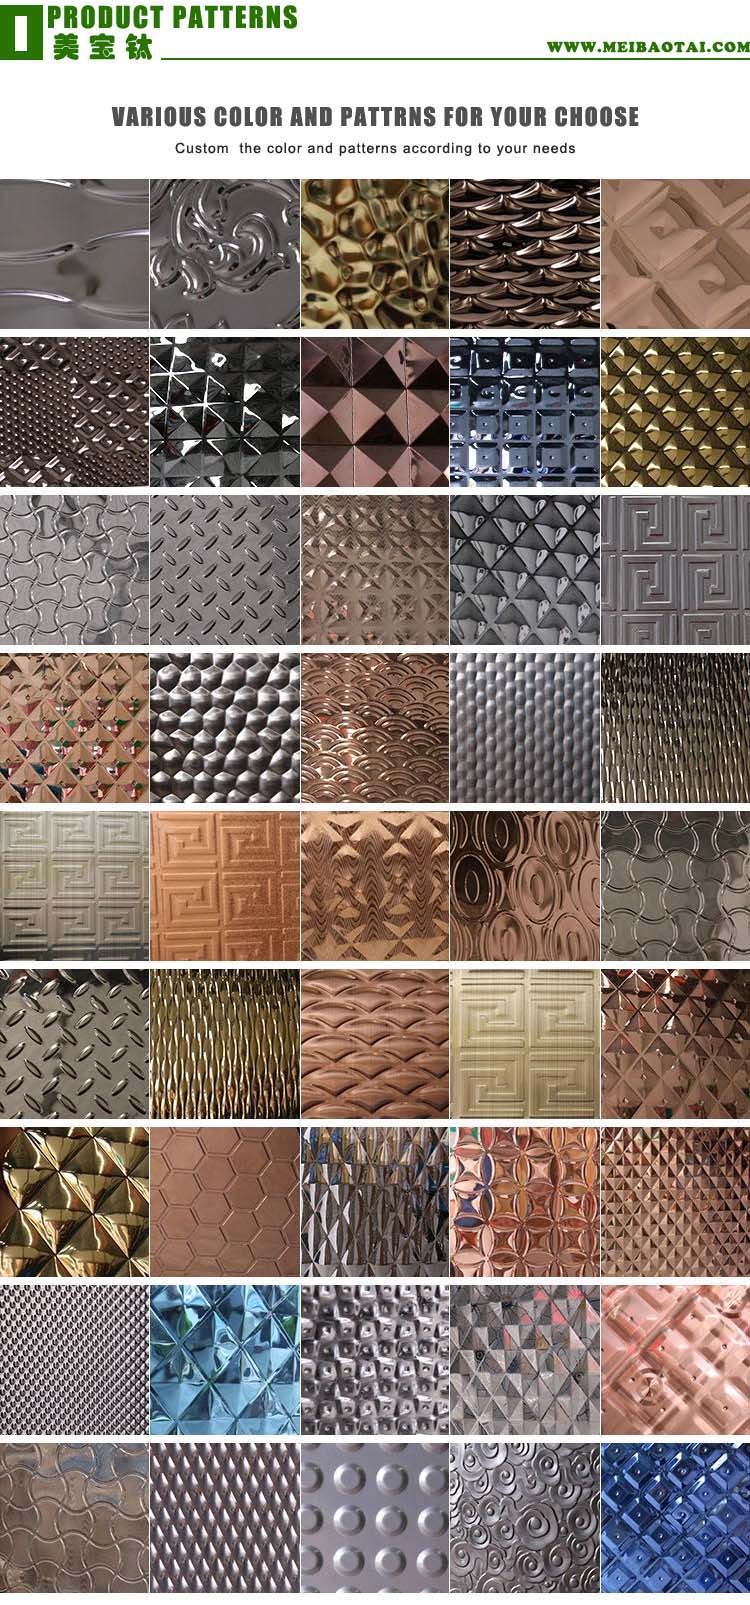 stamped_products_patterns